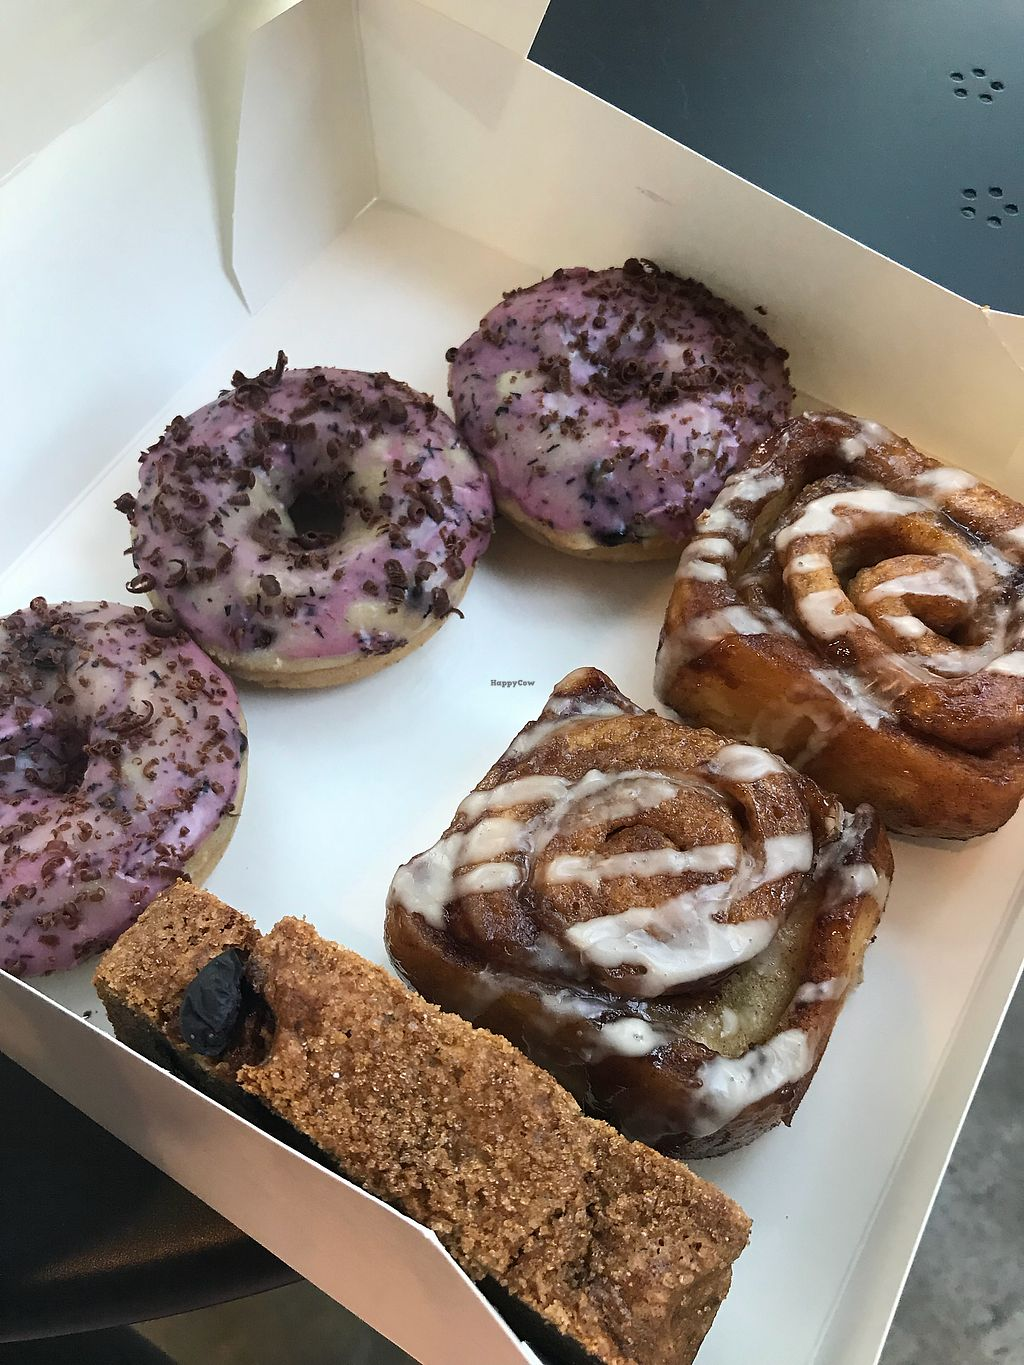 """Photo of Farmacy Vegan Kitchen & Bakery  by <a href=""""/members/profile/HollyJoyMcCabe"""">HollyJoyMcCabe</a> <br/>? <br/> January 17, 2018  - <a href='/contact/abuse/image/92359/347639'>Report</a>"""